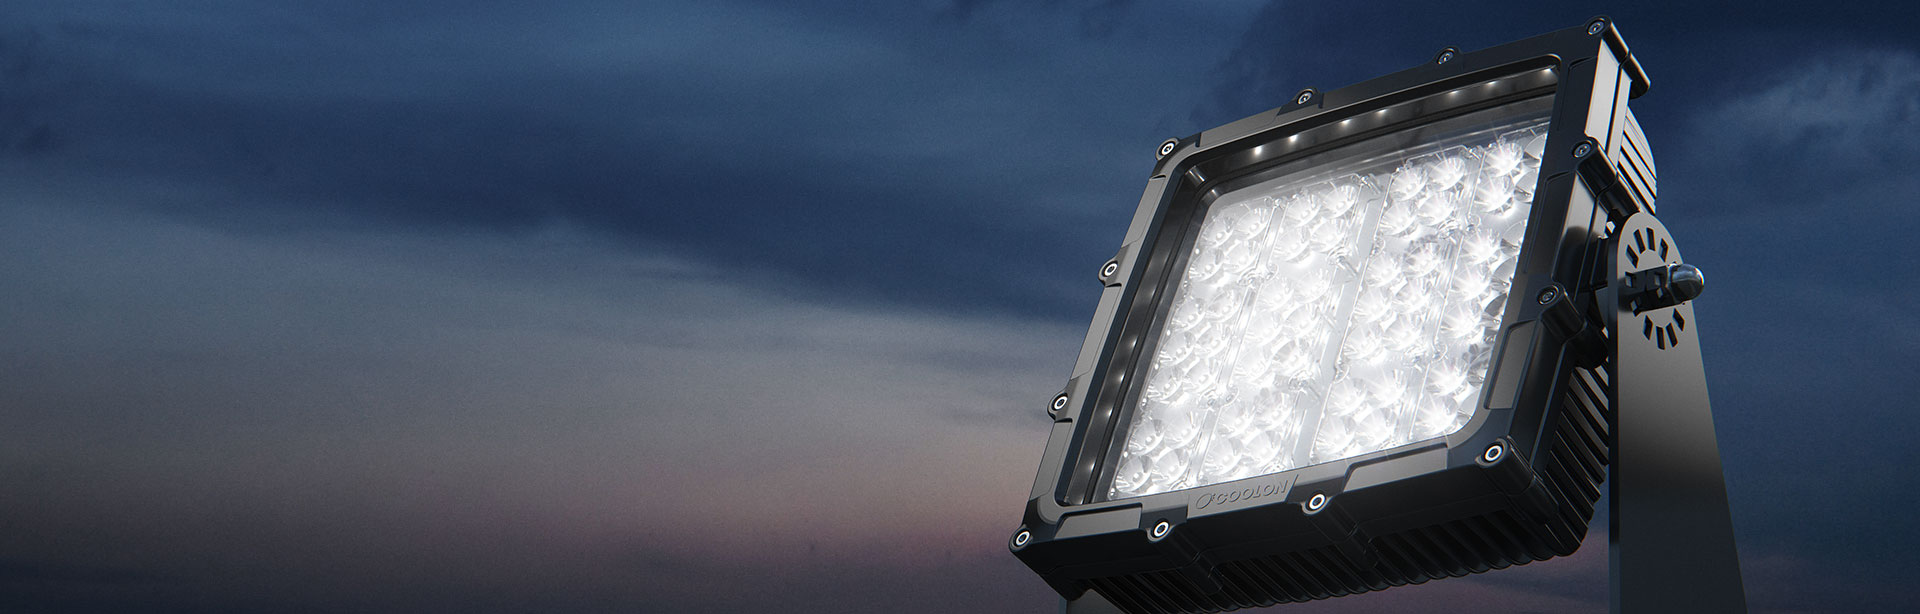 The CP56 LED mining floodlight offers the most robust and heavy-duty industriallighting solution for tough mining machinery. It delivershigh-power light in mining environments.